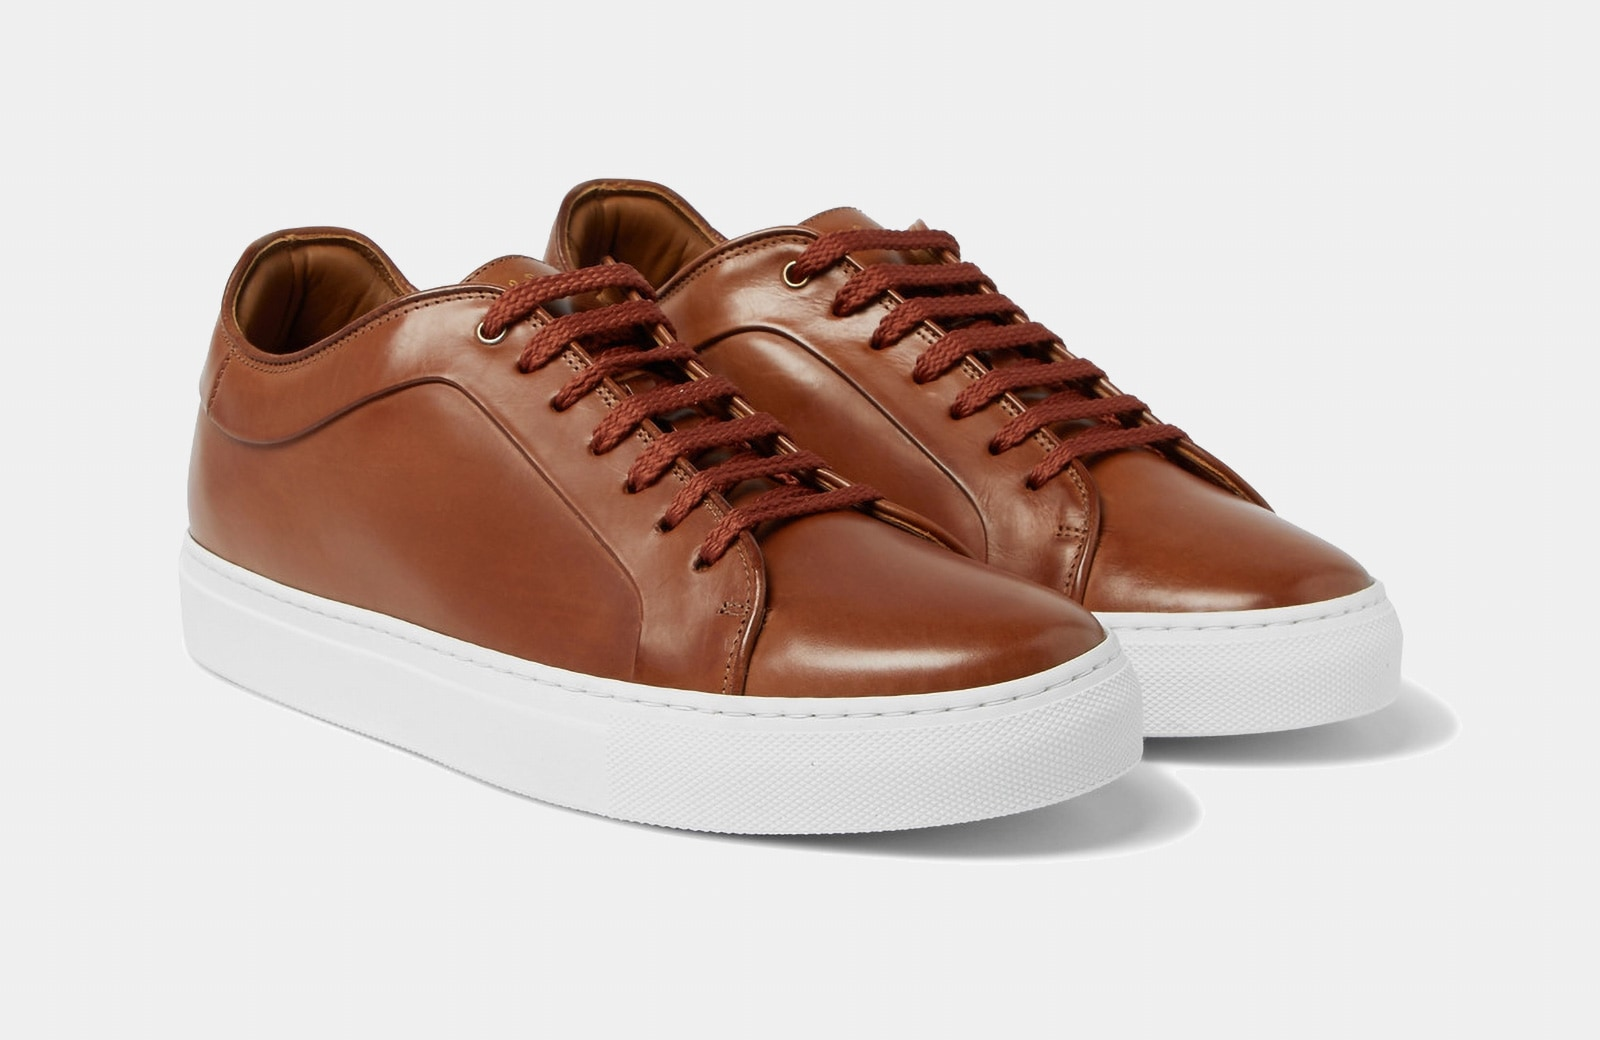 83b1b62e7cf5 best premium leather sneaker men Paul Smith luxury style - Luxe Digital